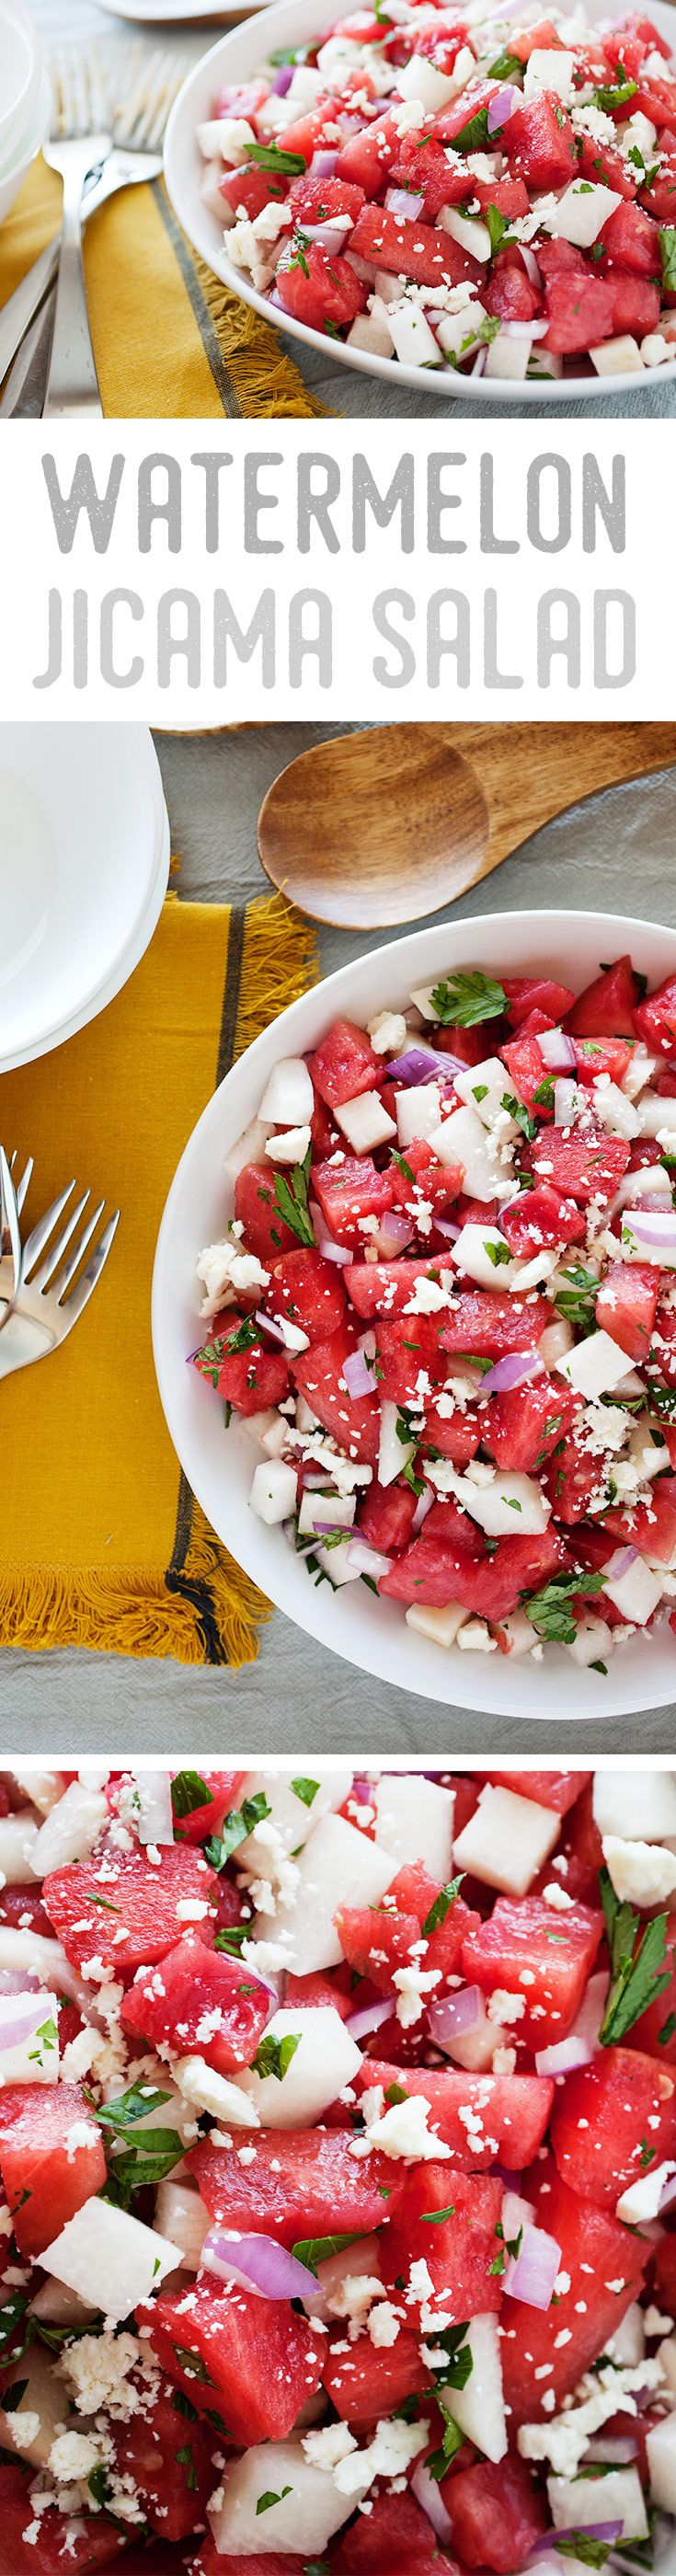 This refreshing summer salad boasts a wonderful mixture of tender and crunchy textures. Using fresh watermelon, jicama and herbs give the salad the most refreshing taste. Pro tip: For the best flavor, keep the ingredients chilled and toss everything together just before serving.